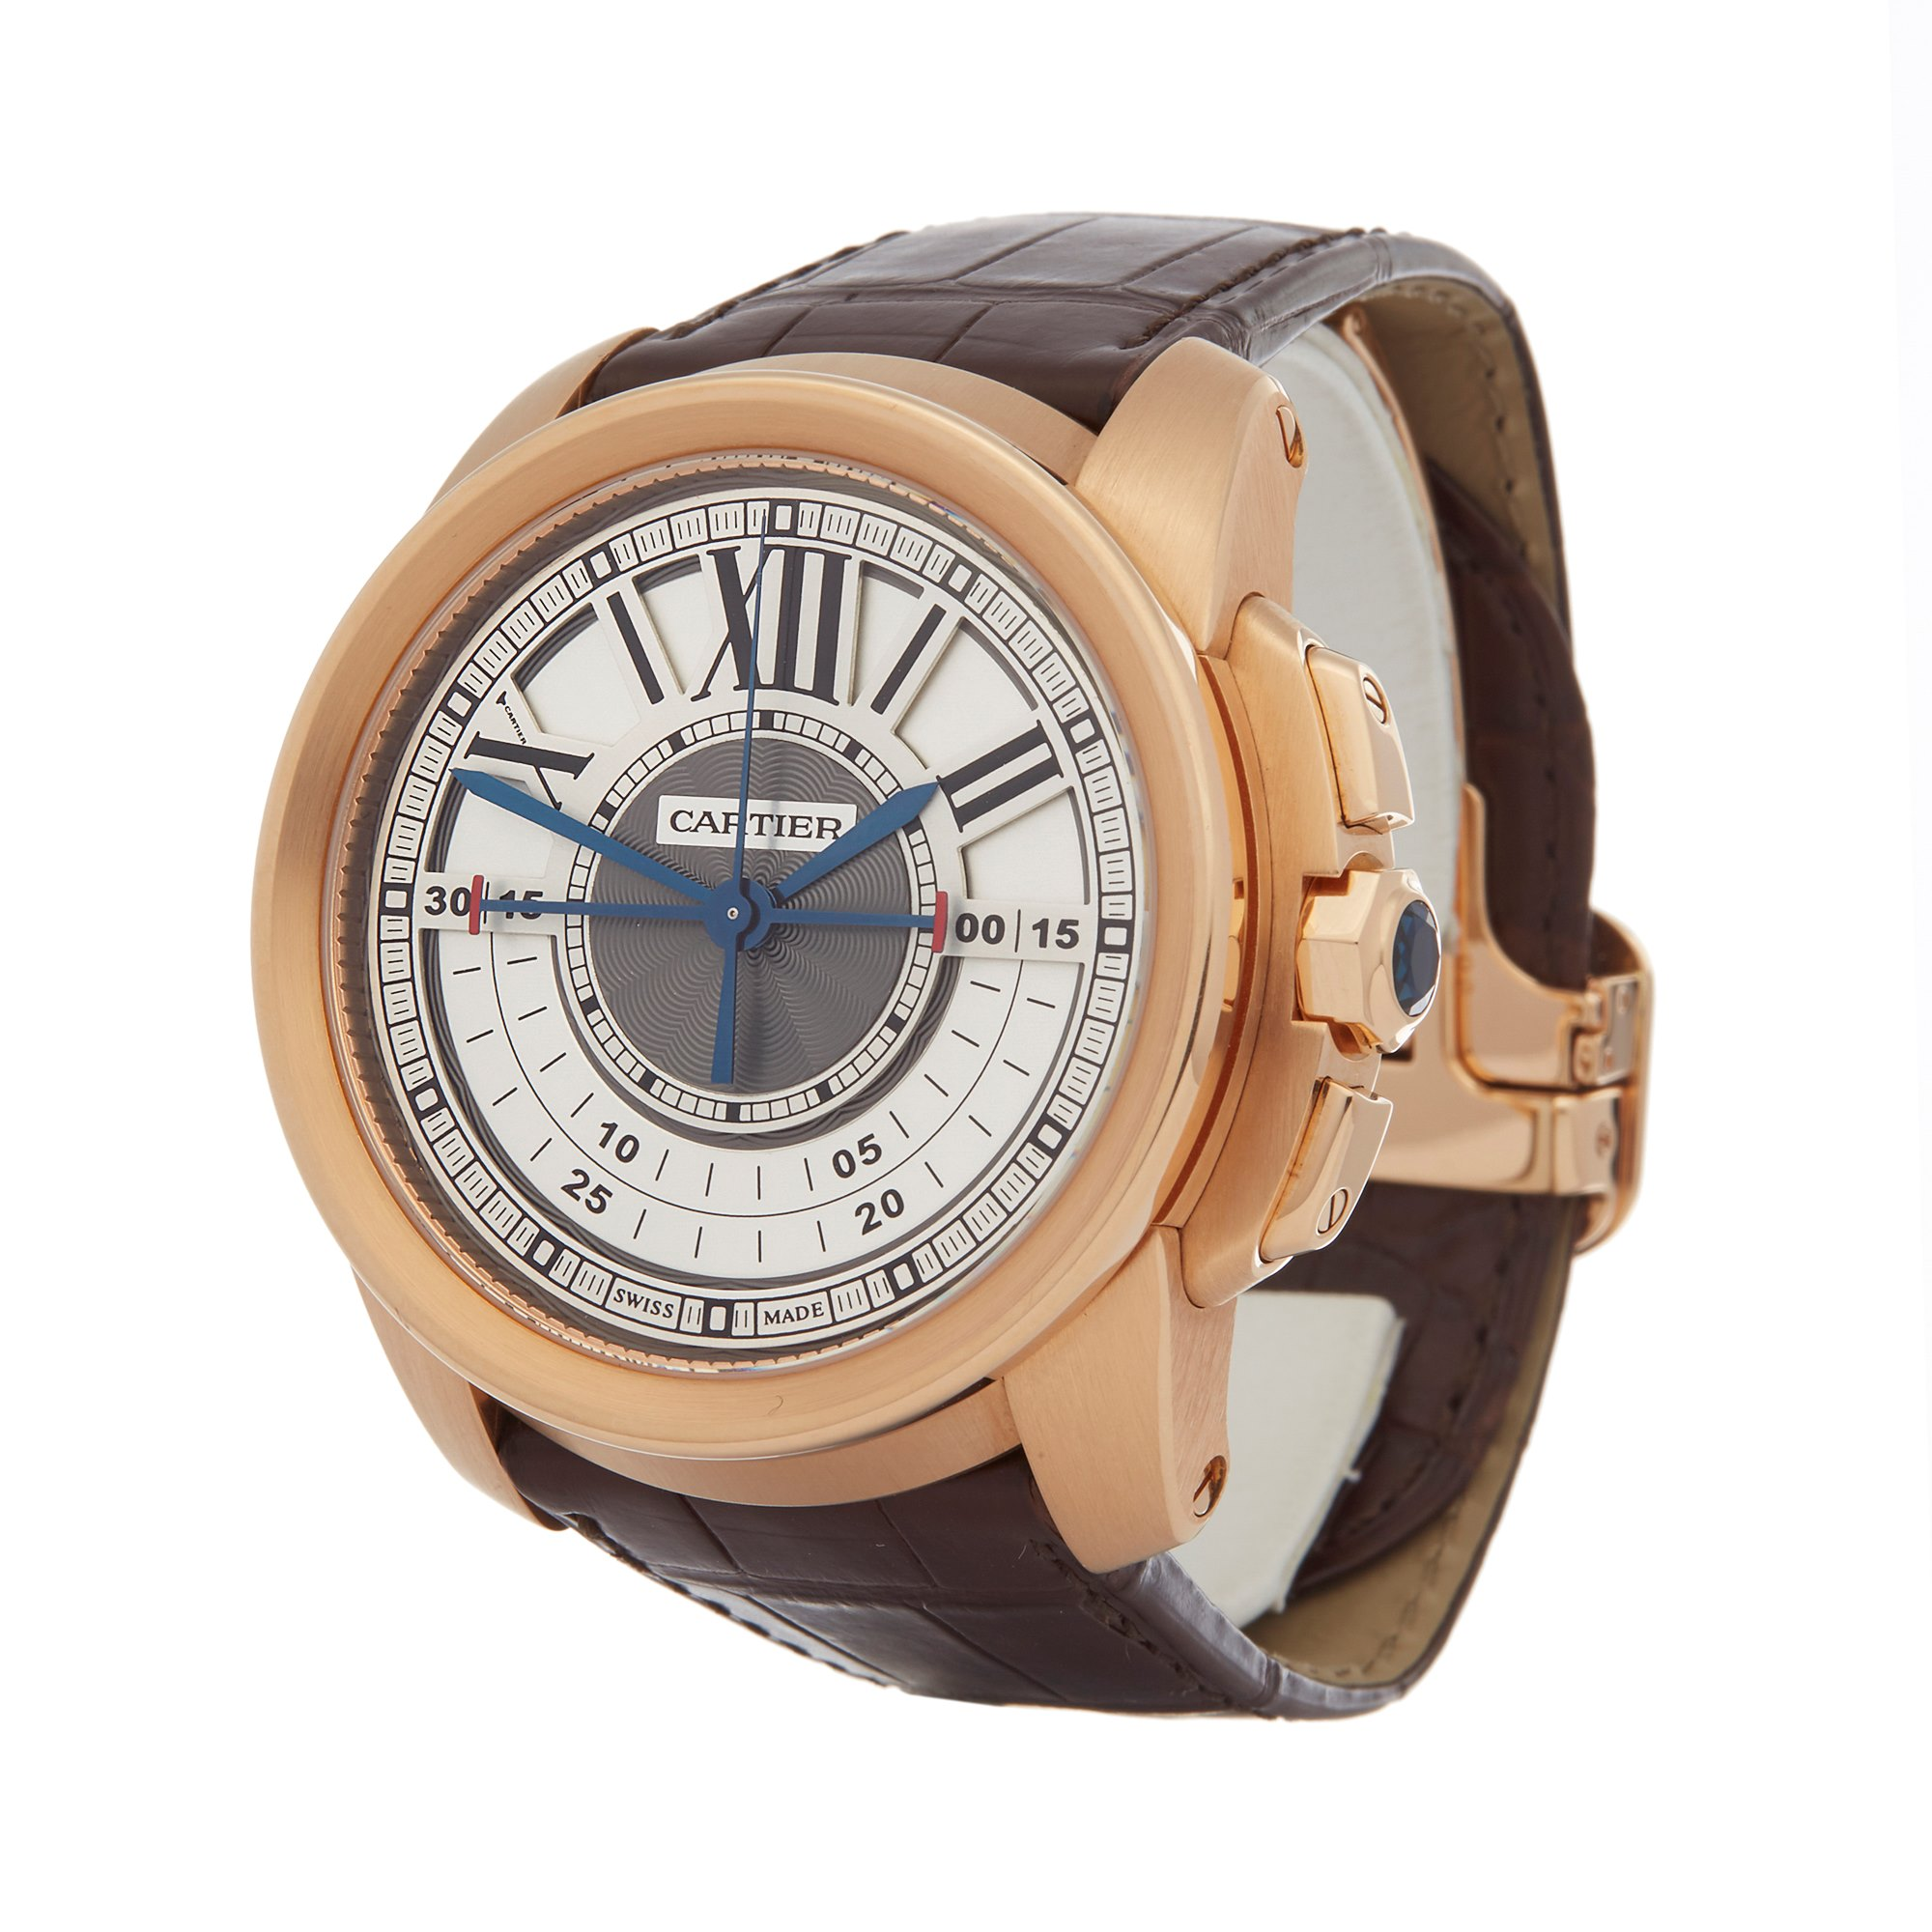 Cartier Calibre Central Chronograph 18K Rose Gold W7100004 or 3242